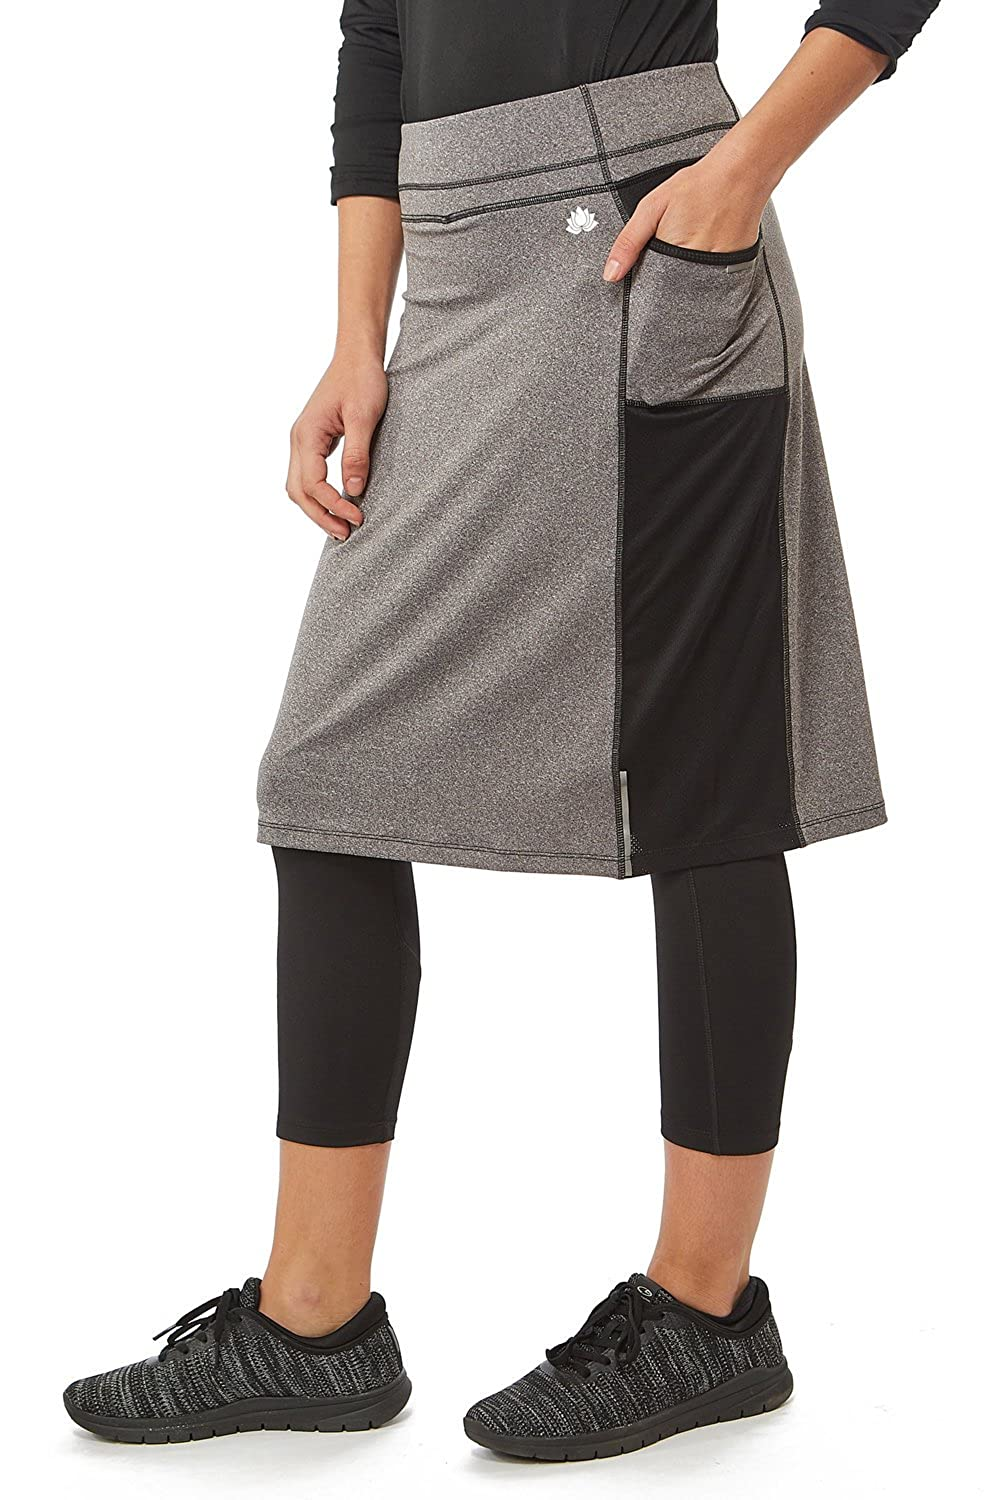 Color Block Snoga Modest Athleisure Skirt with Pockets Grey/Black - XS M27-blkgry-xs